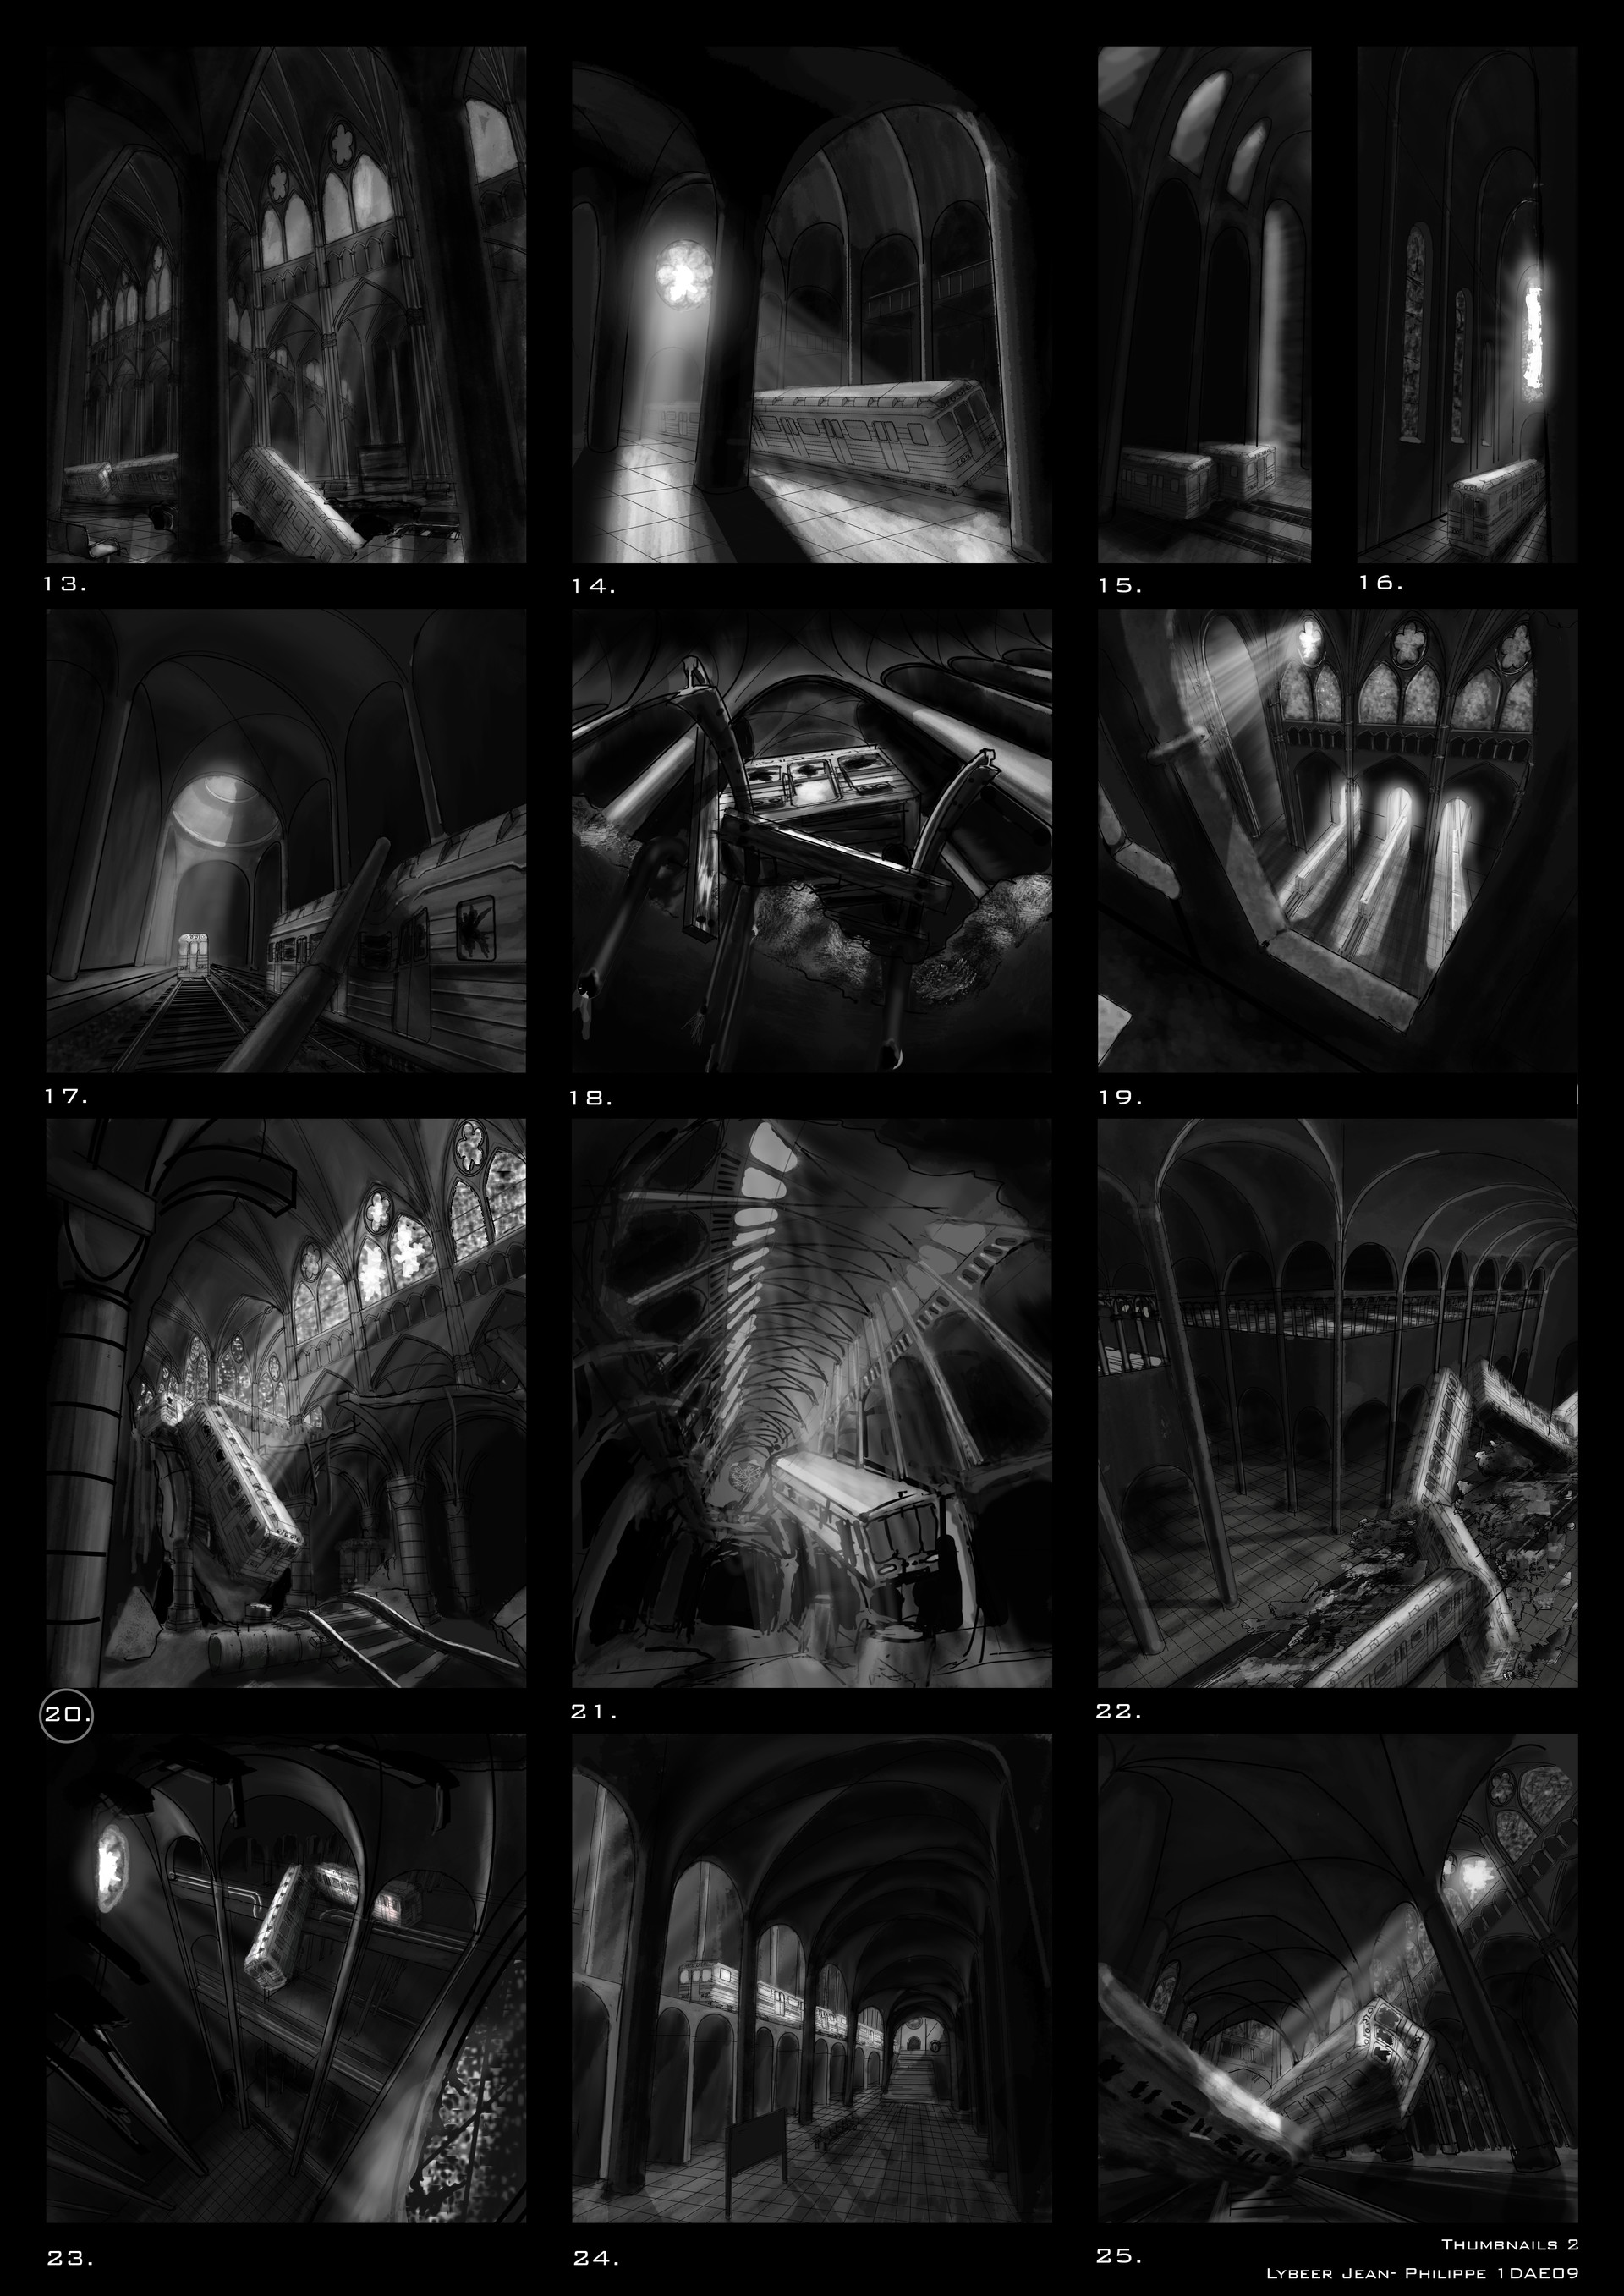 Jean philippe lybeer lybeer jean philippe 1dae09 03 01thumbnails2